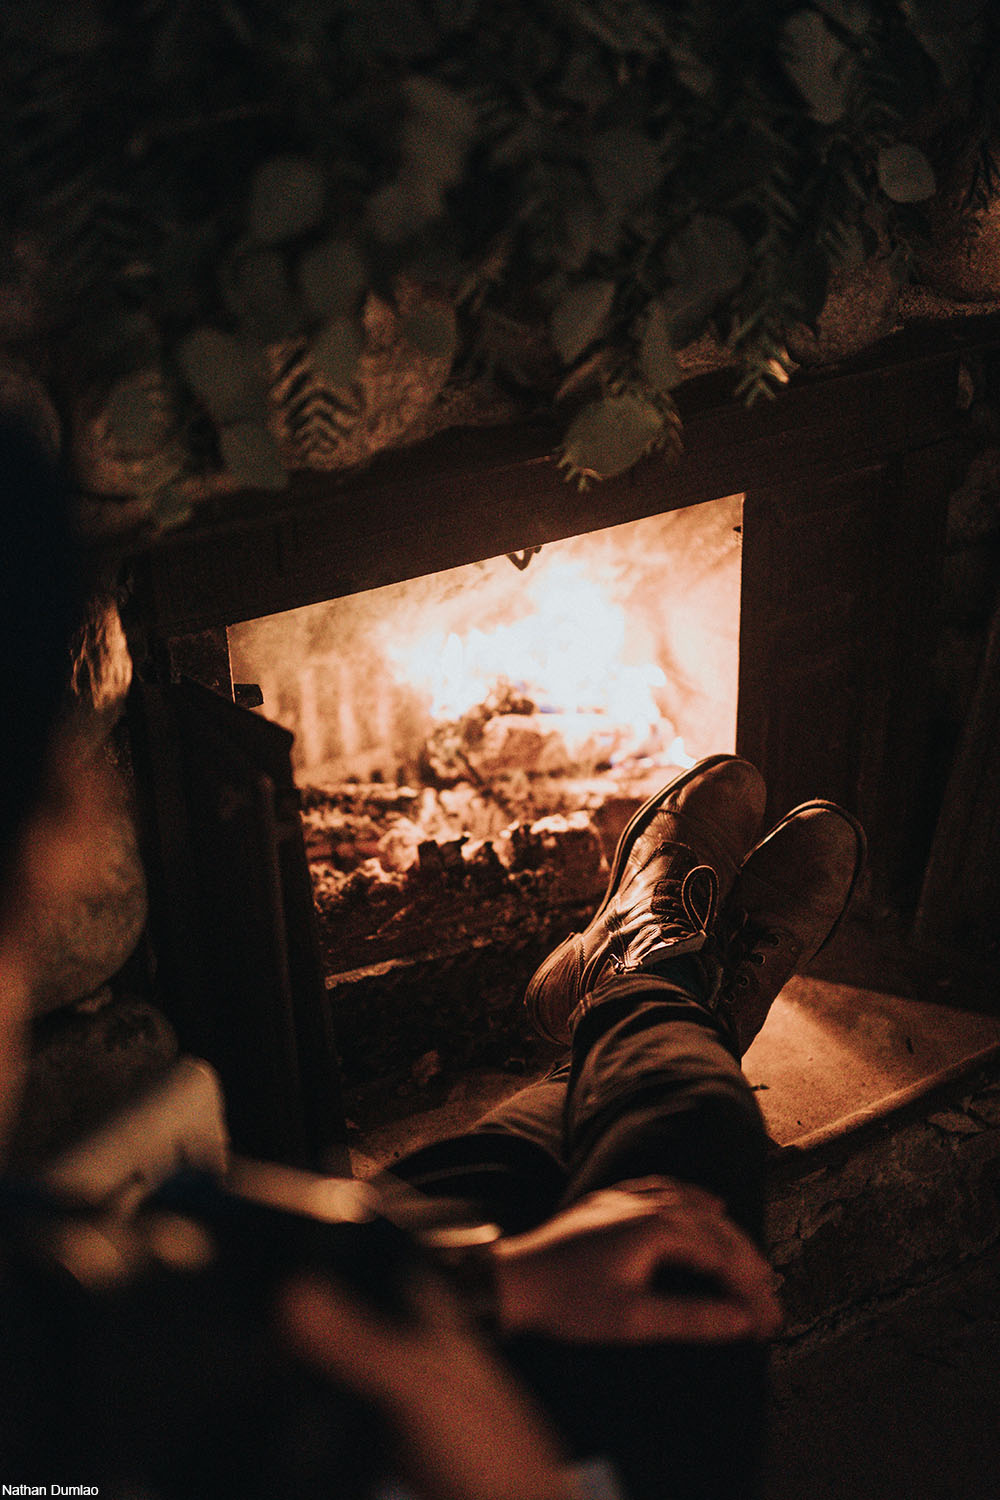 person relaxing in front of a fire